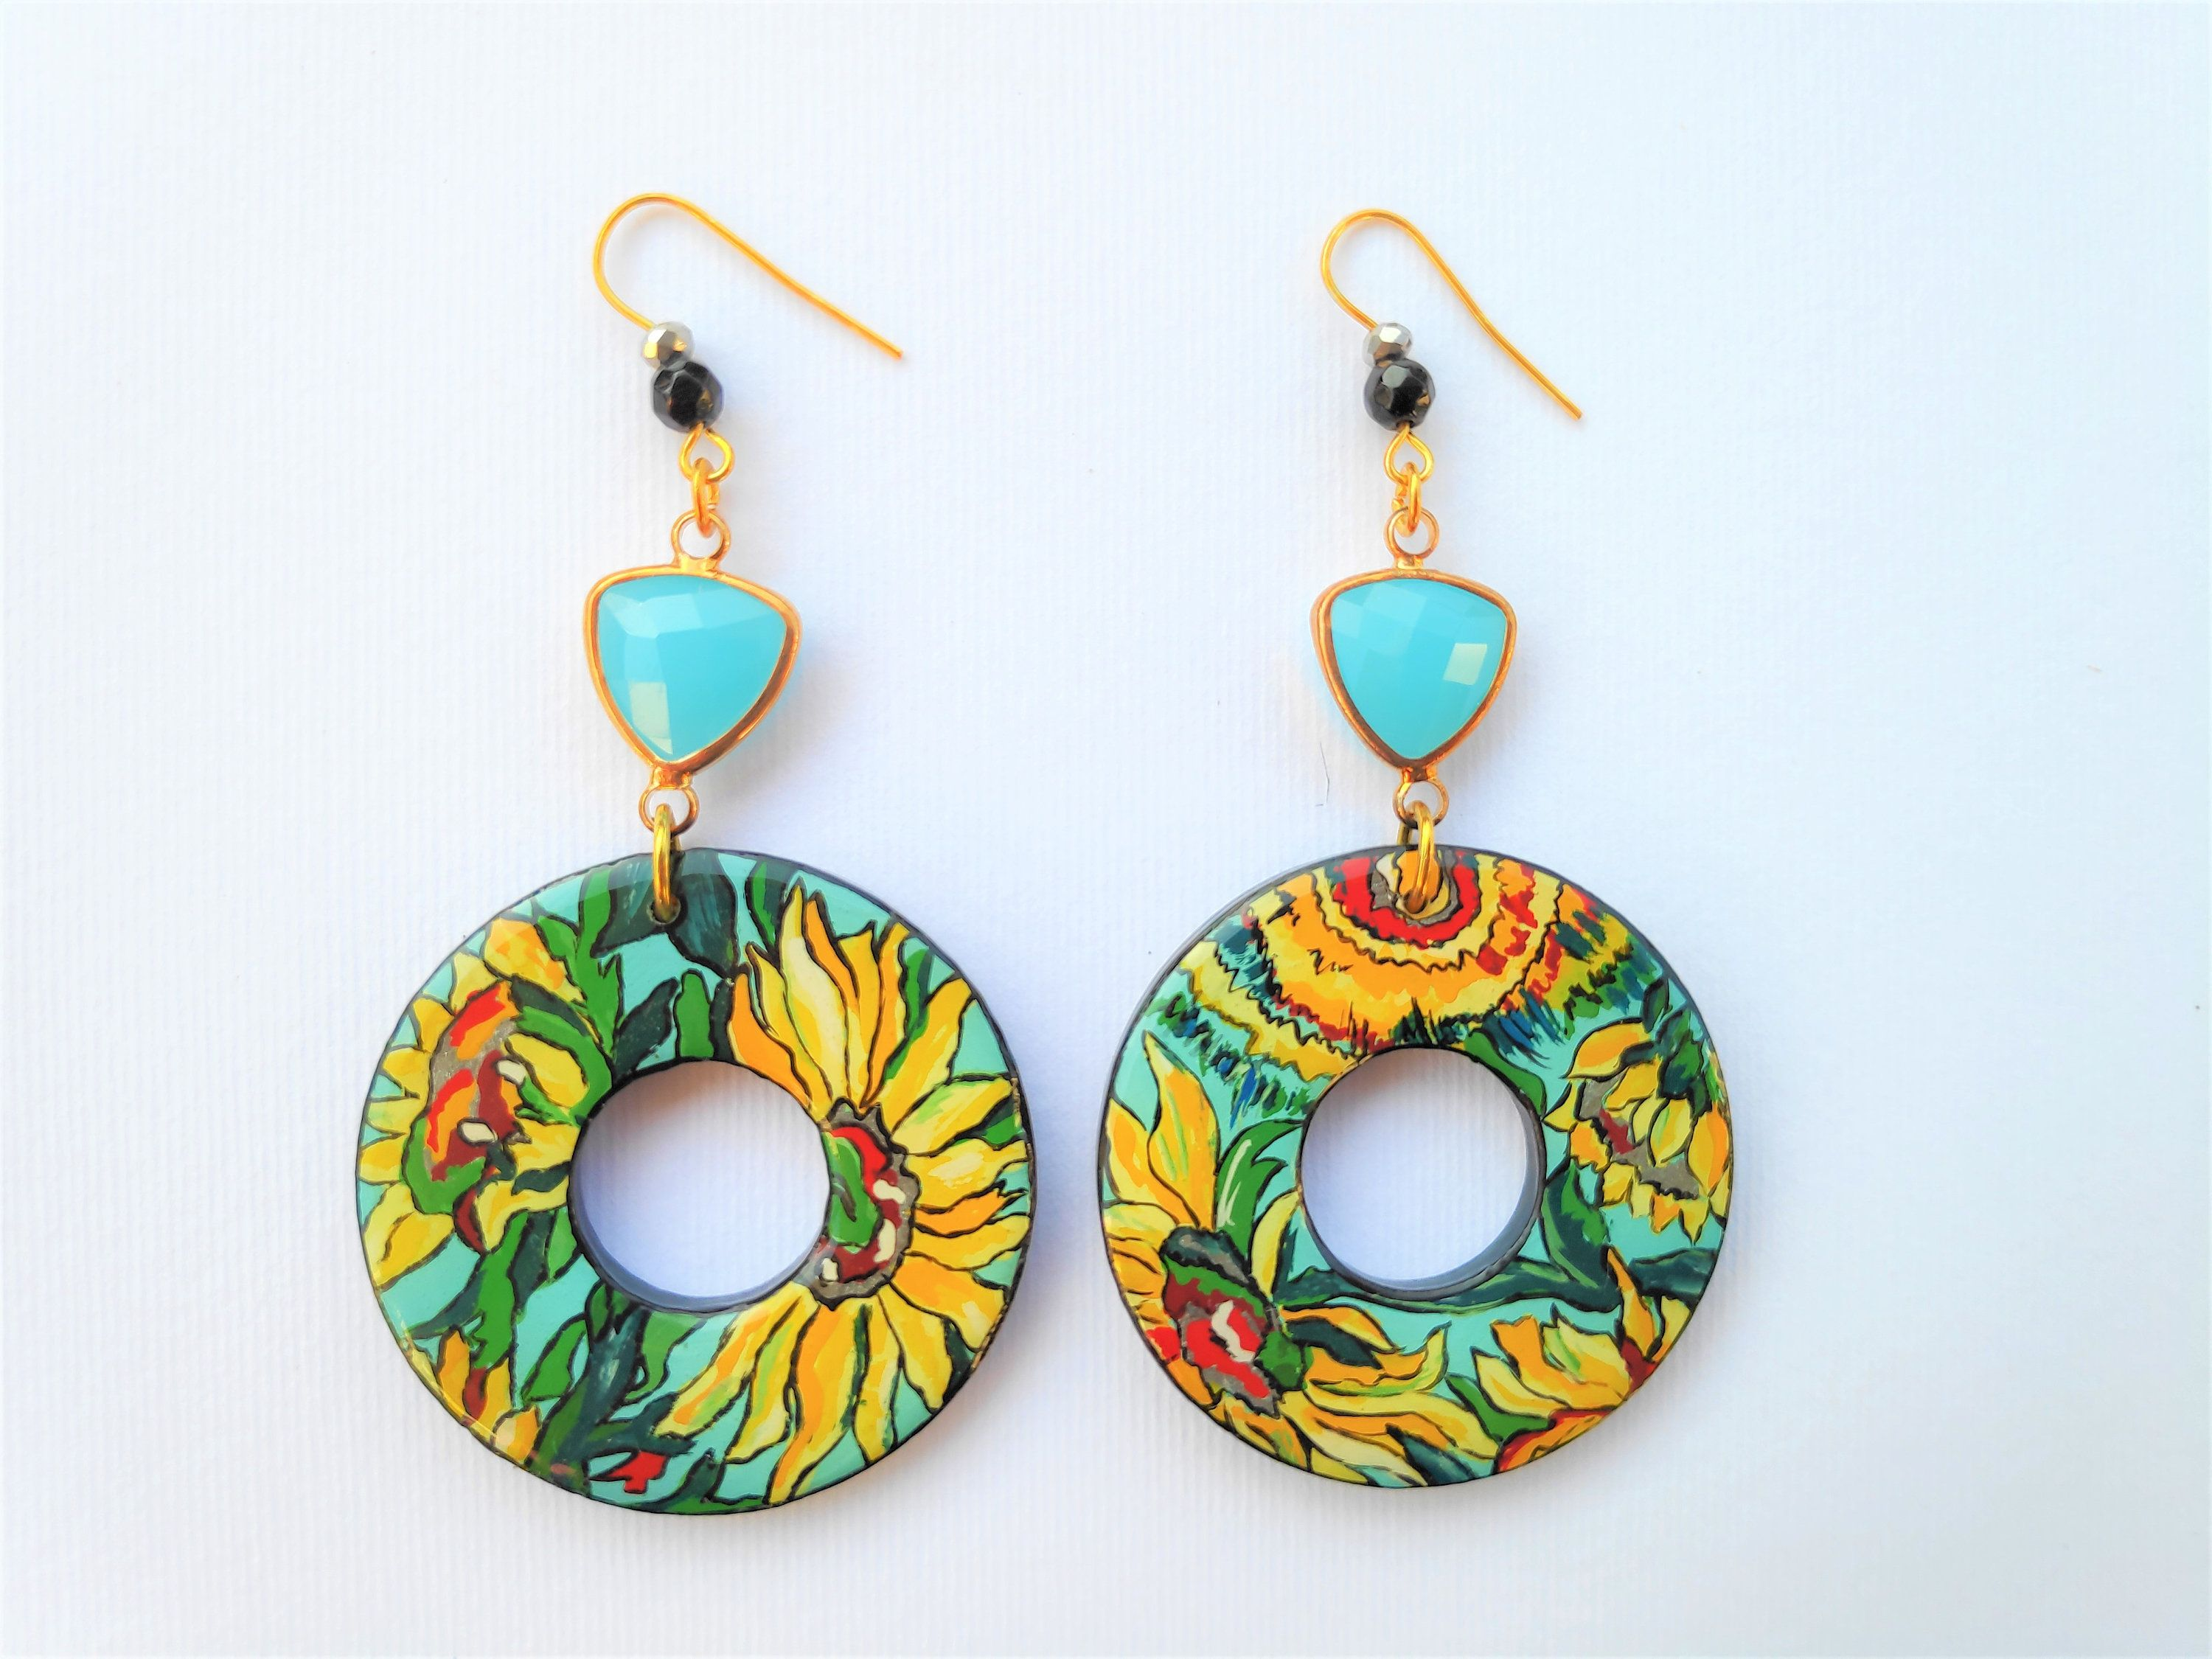 laser cut plastic jewellery for her Wave Print Earrings Fashion multicolour layered stud earrings handmade gift